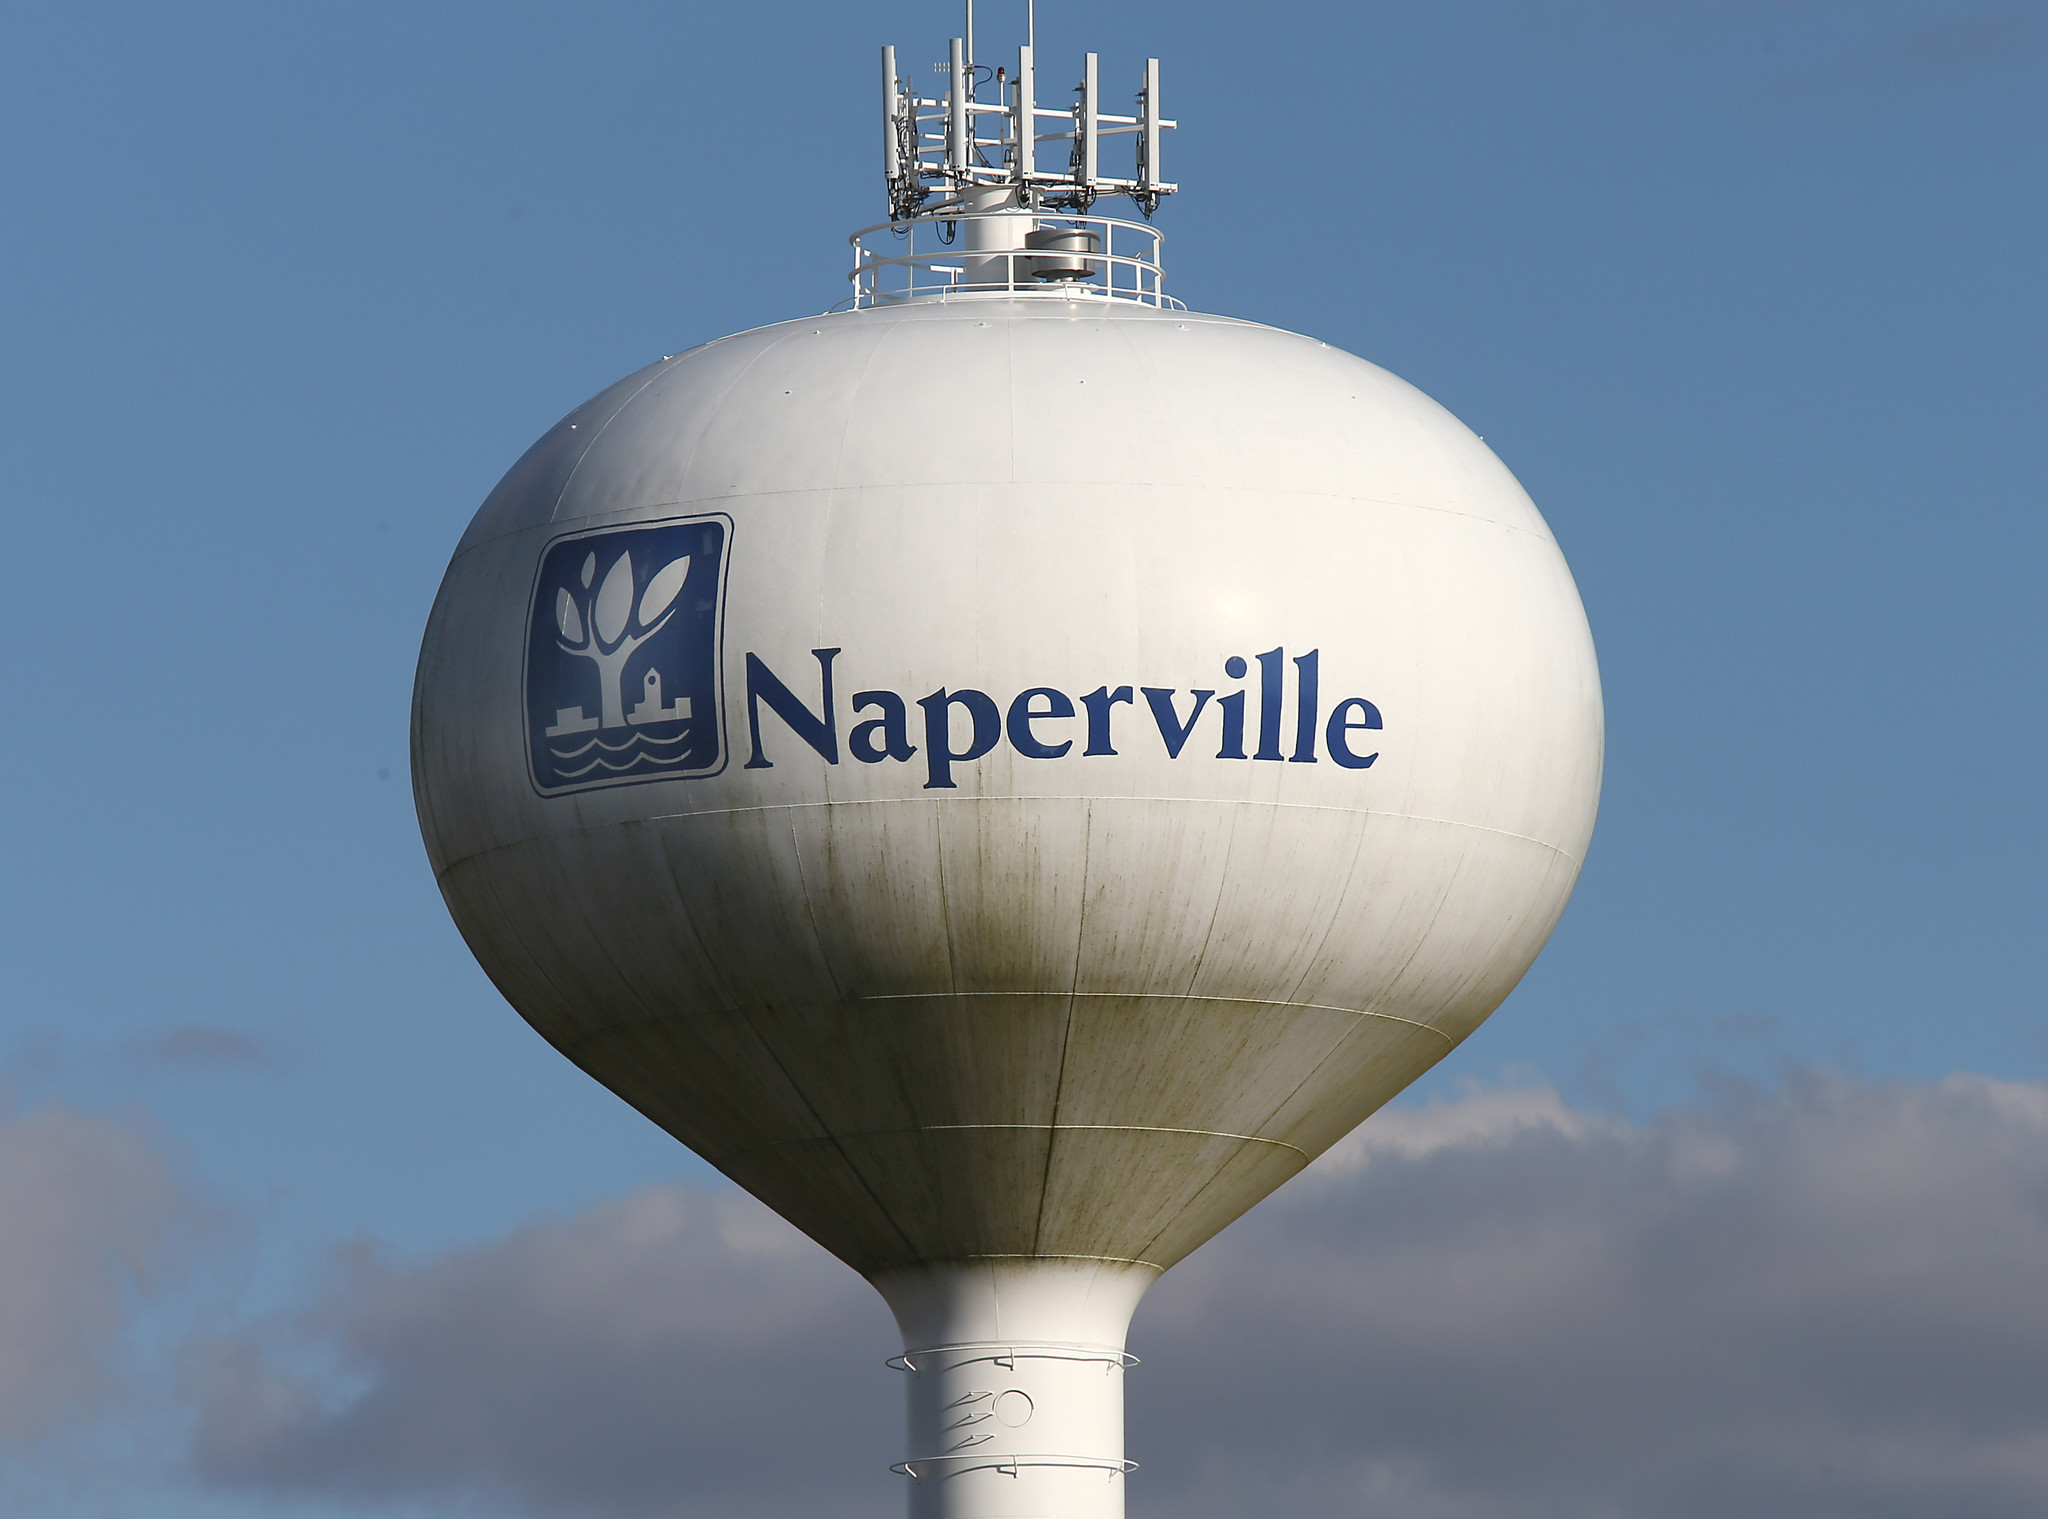 Naperville dating services